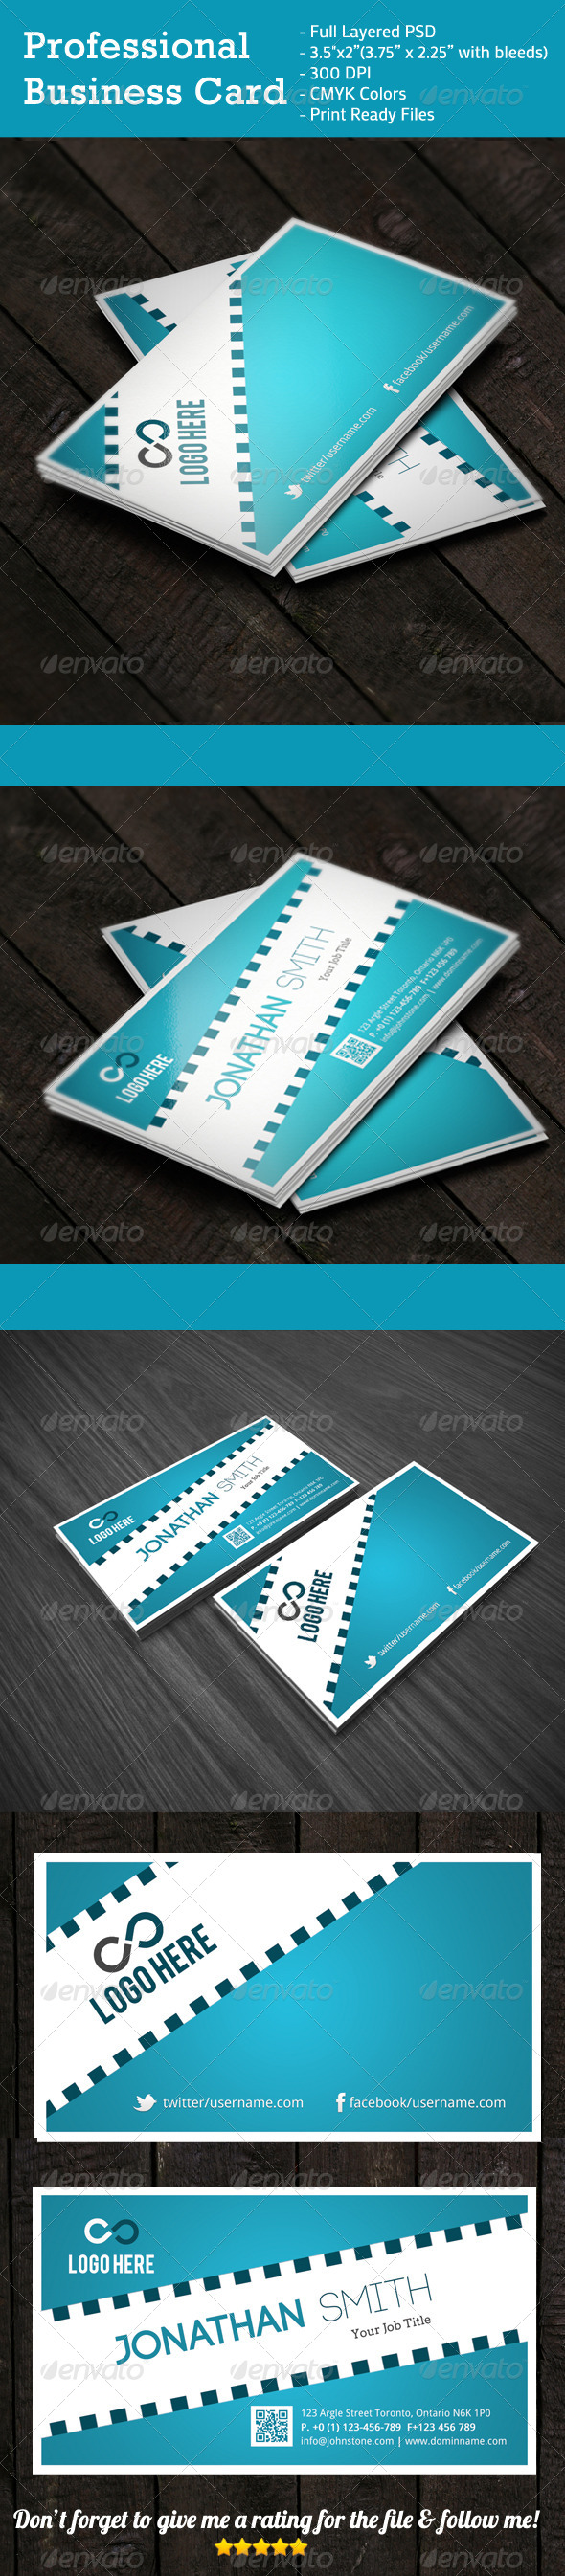 GraphicRiver Professional Business Card 4162995